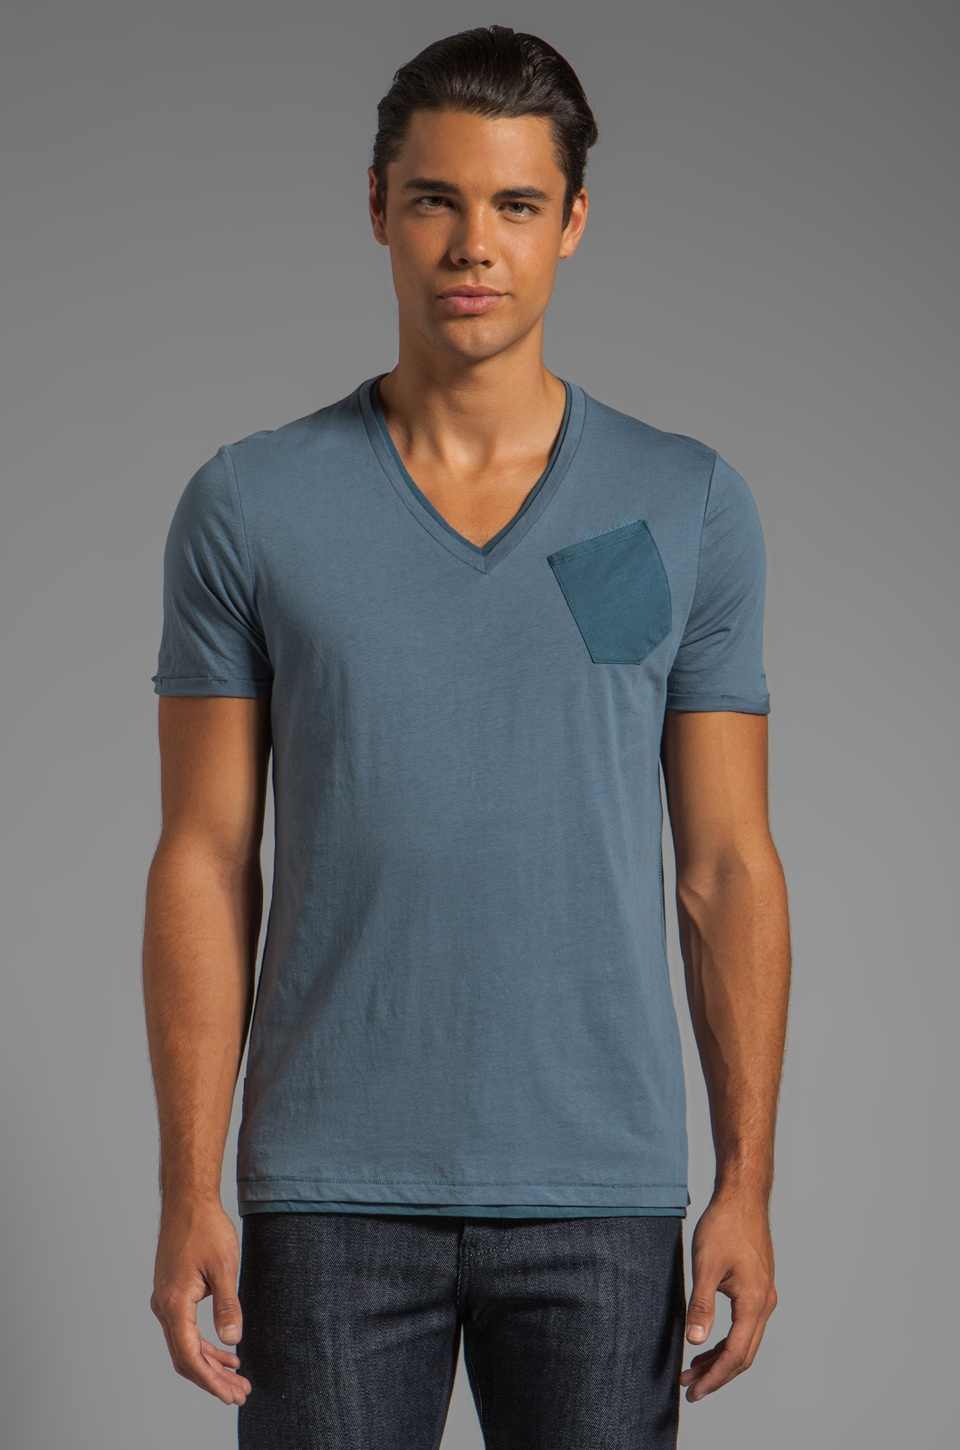 G-Star Spike Double V Tee in Avio